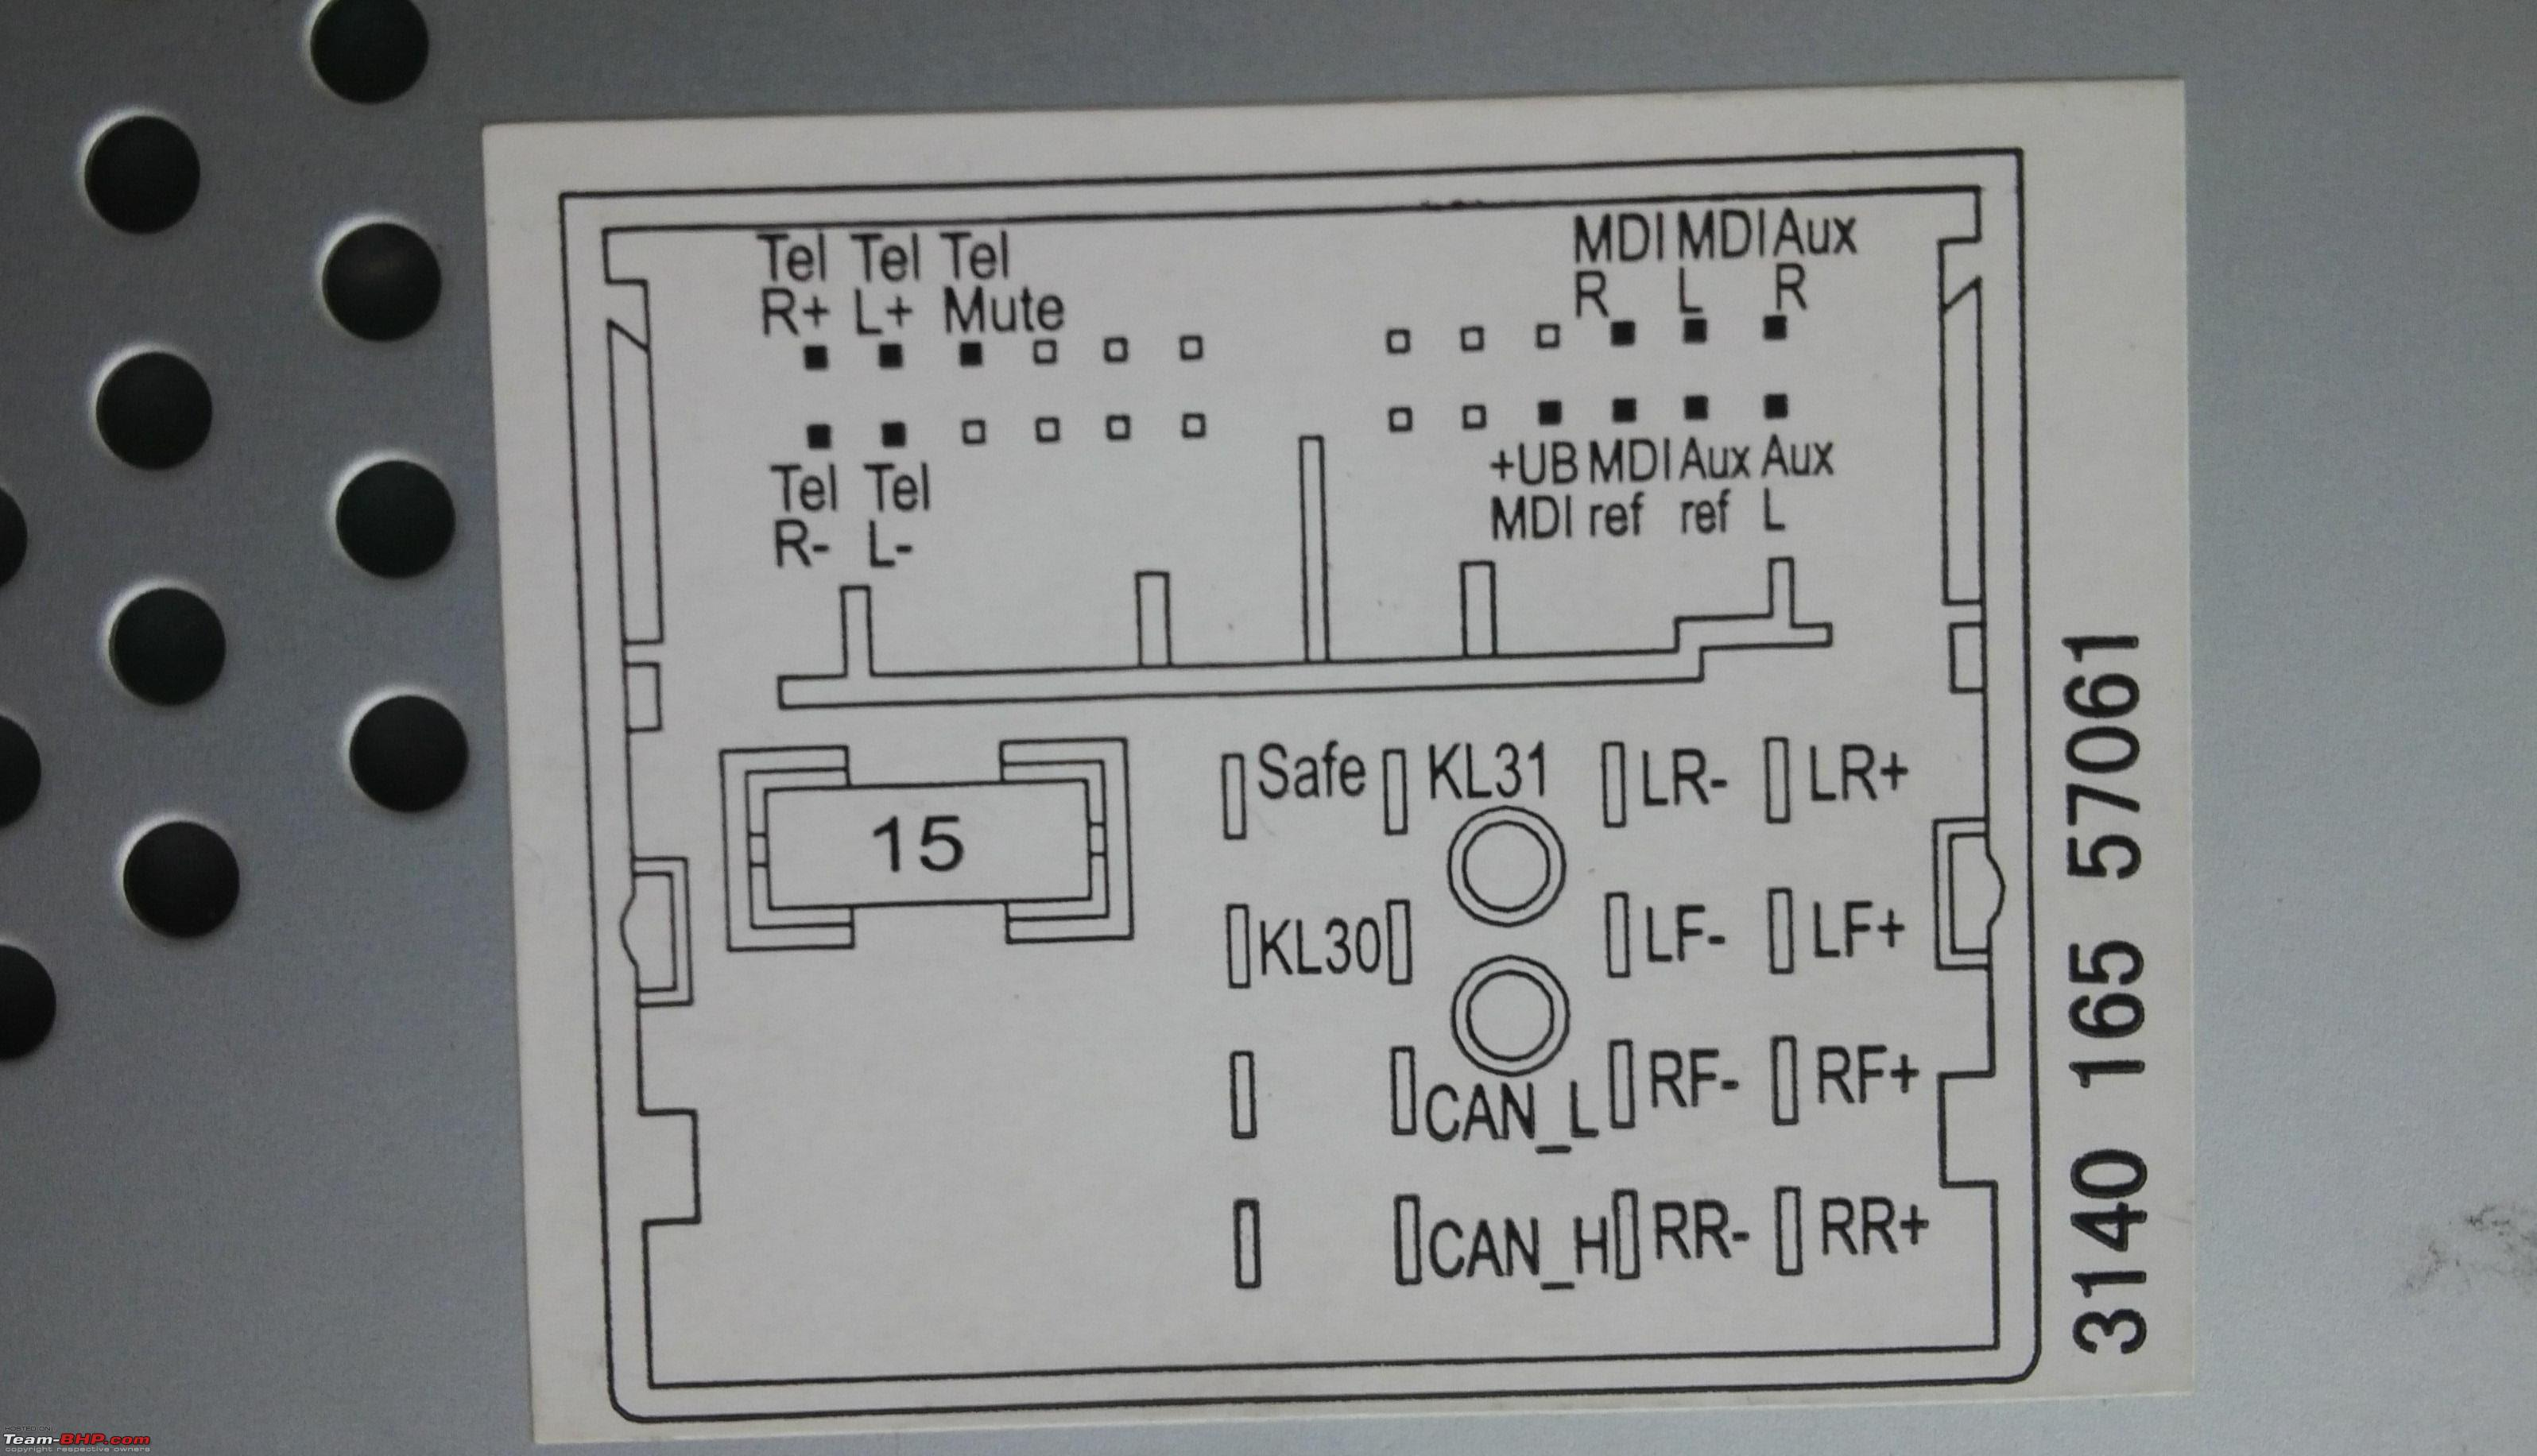 Wiring Diagram For Rcd 510 Diagrams Ground Fault Circuit Interrupter 22 Images Residual Current Device